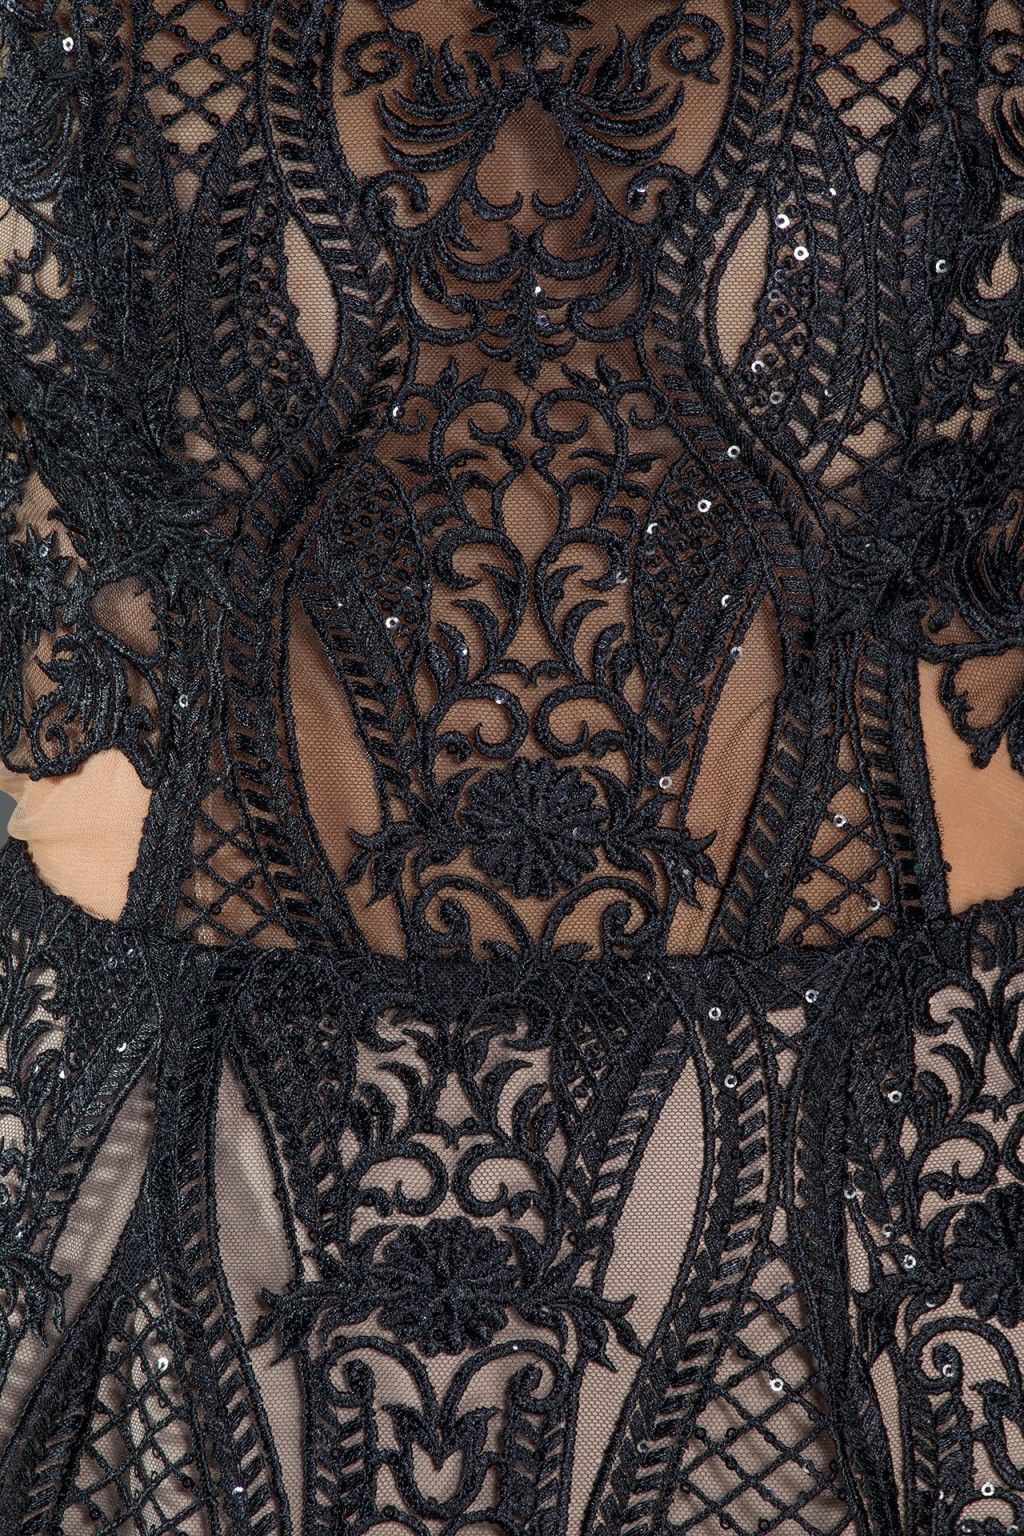 Madelene Noir structured black lace dress